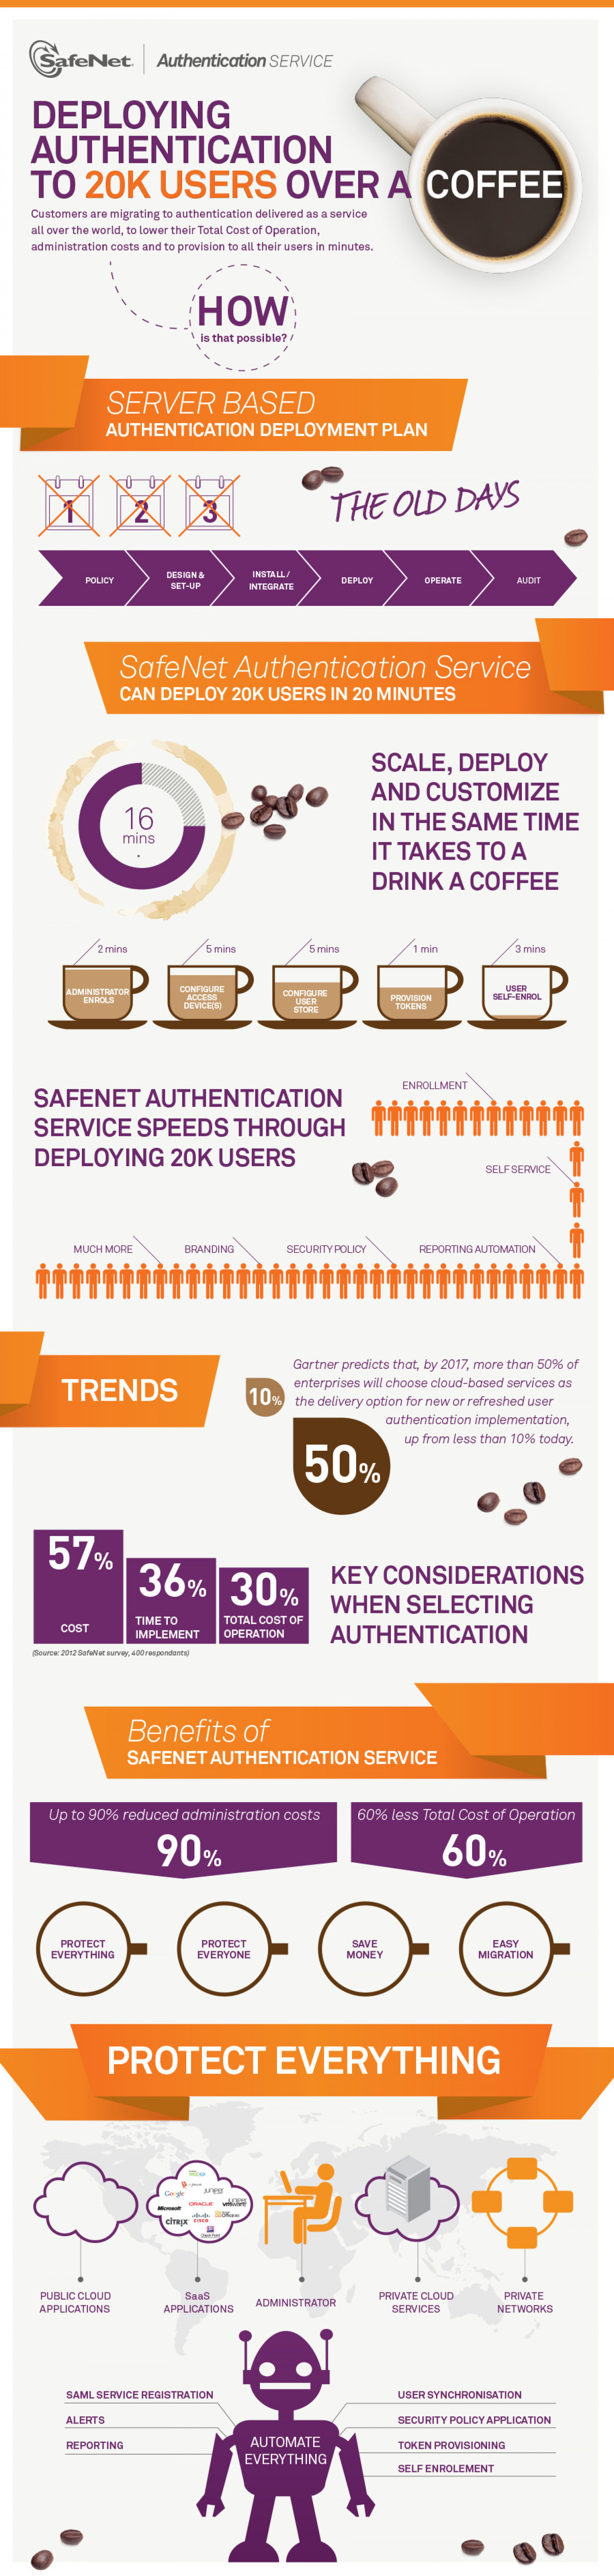 Deploying Authentication to 20K Users over Coffee Infographic